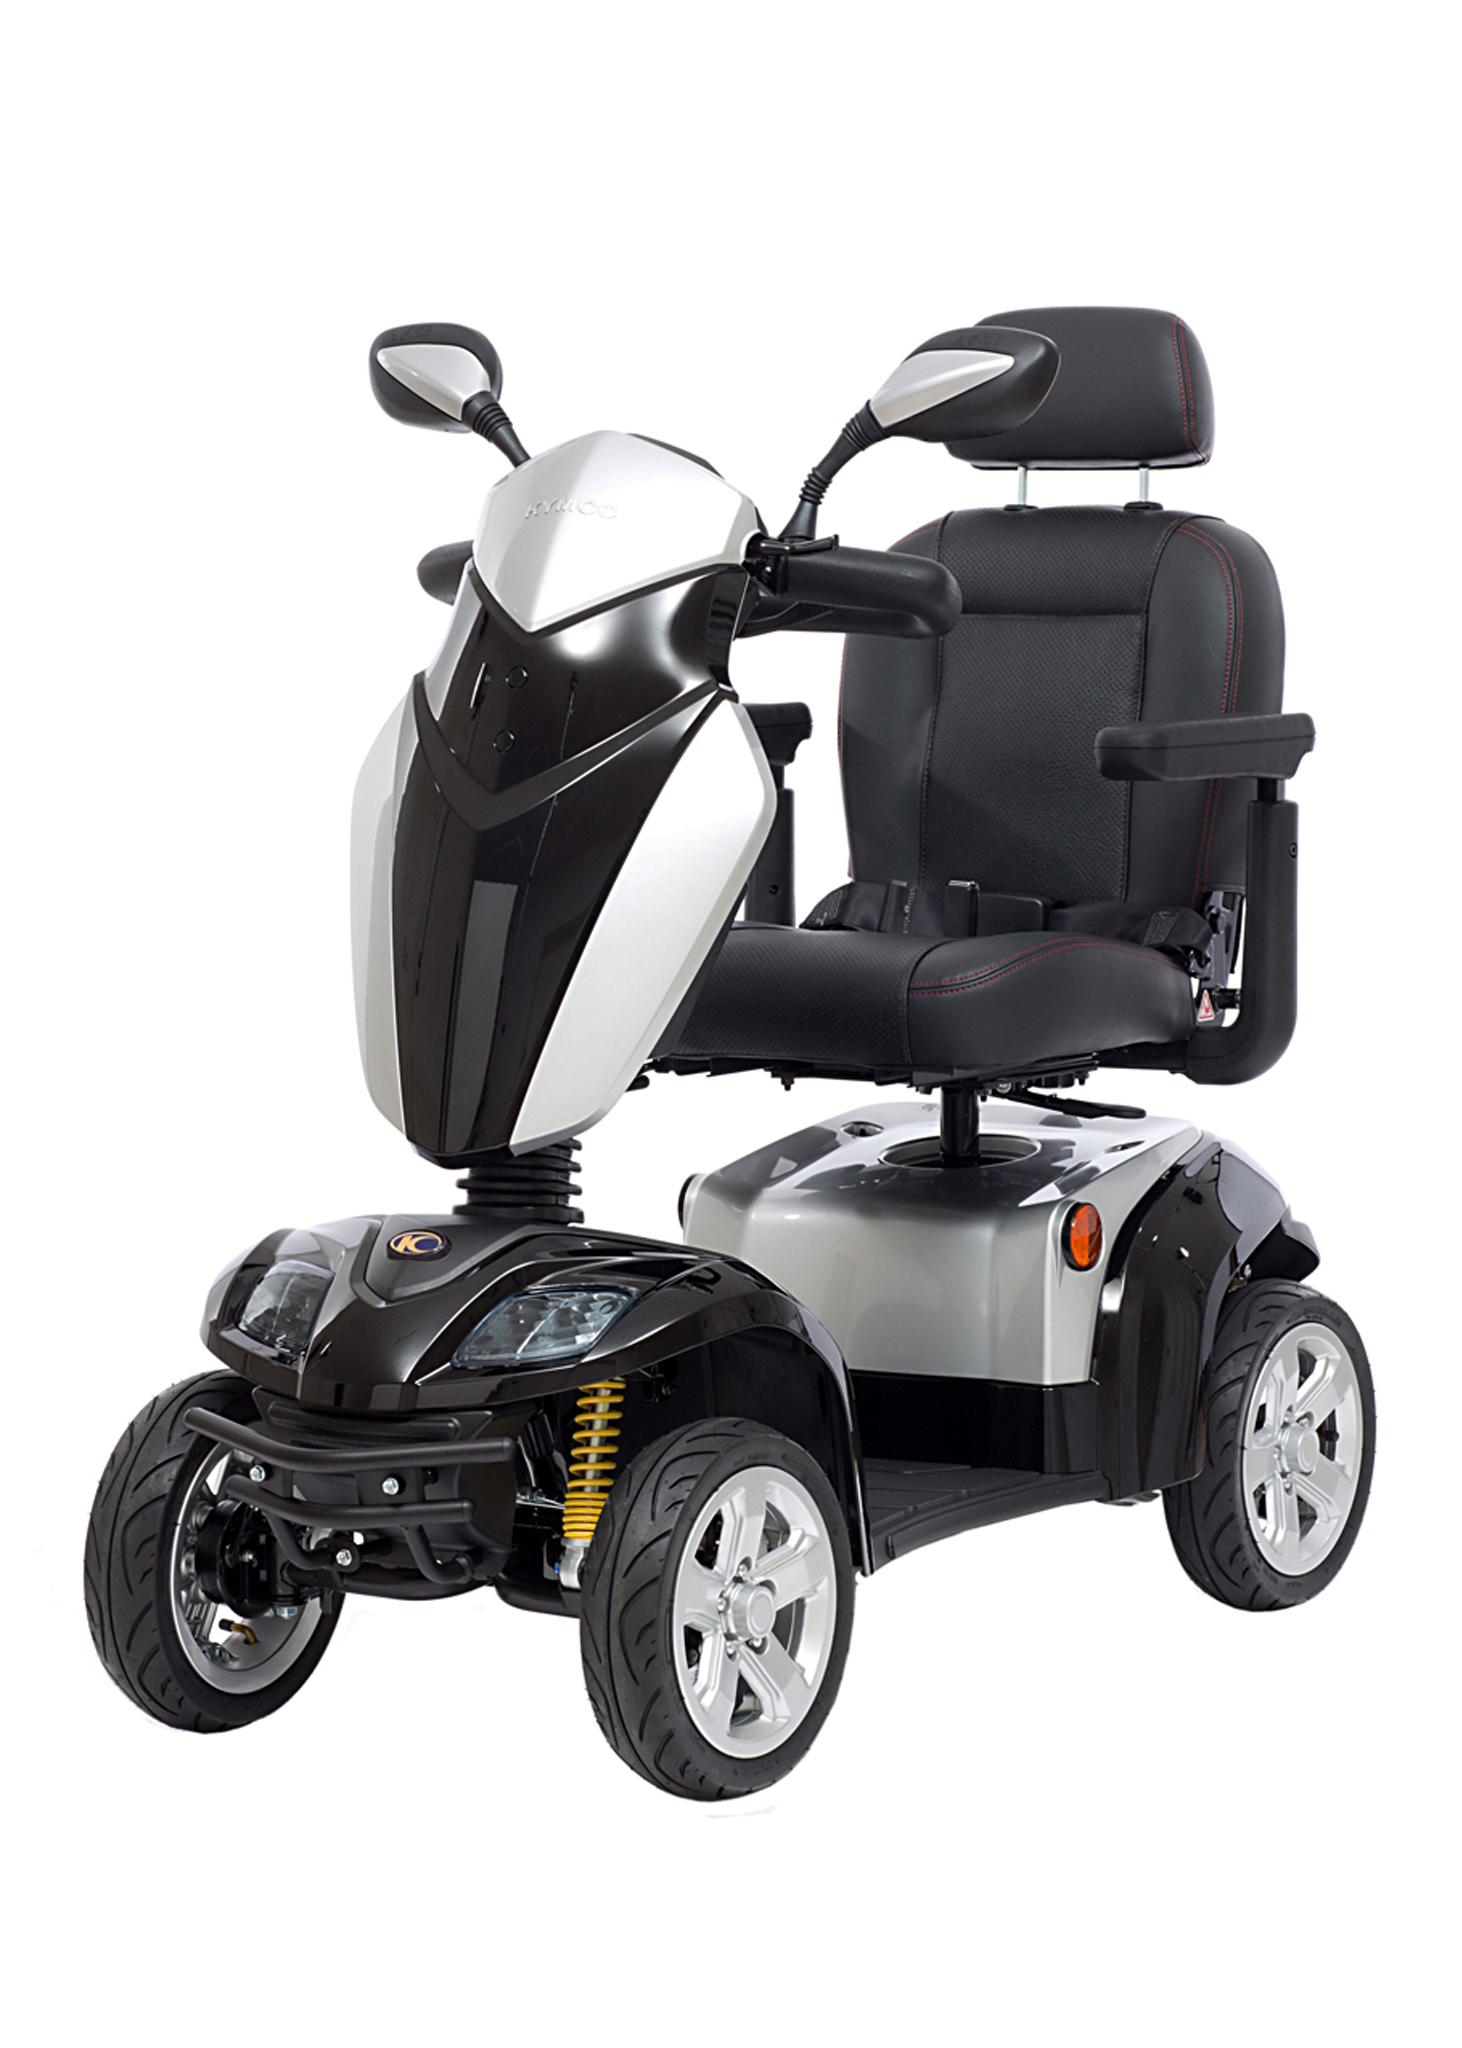 Kymco Agility (Black) (Edited)